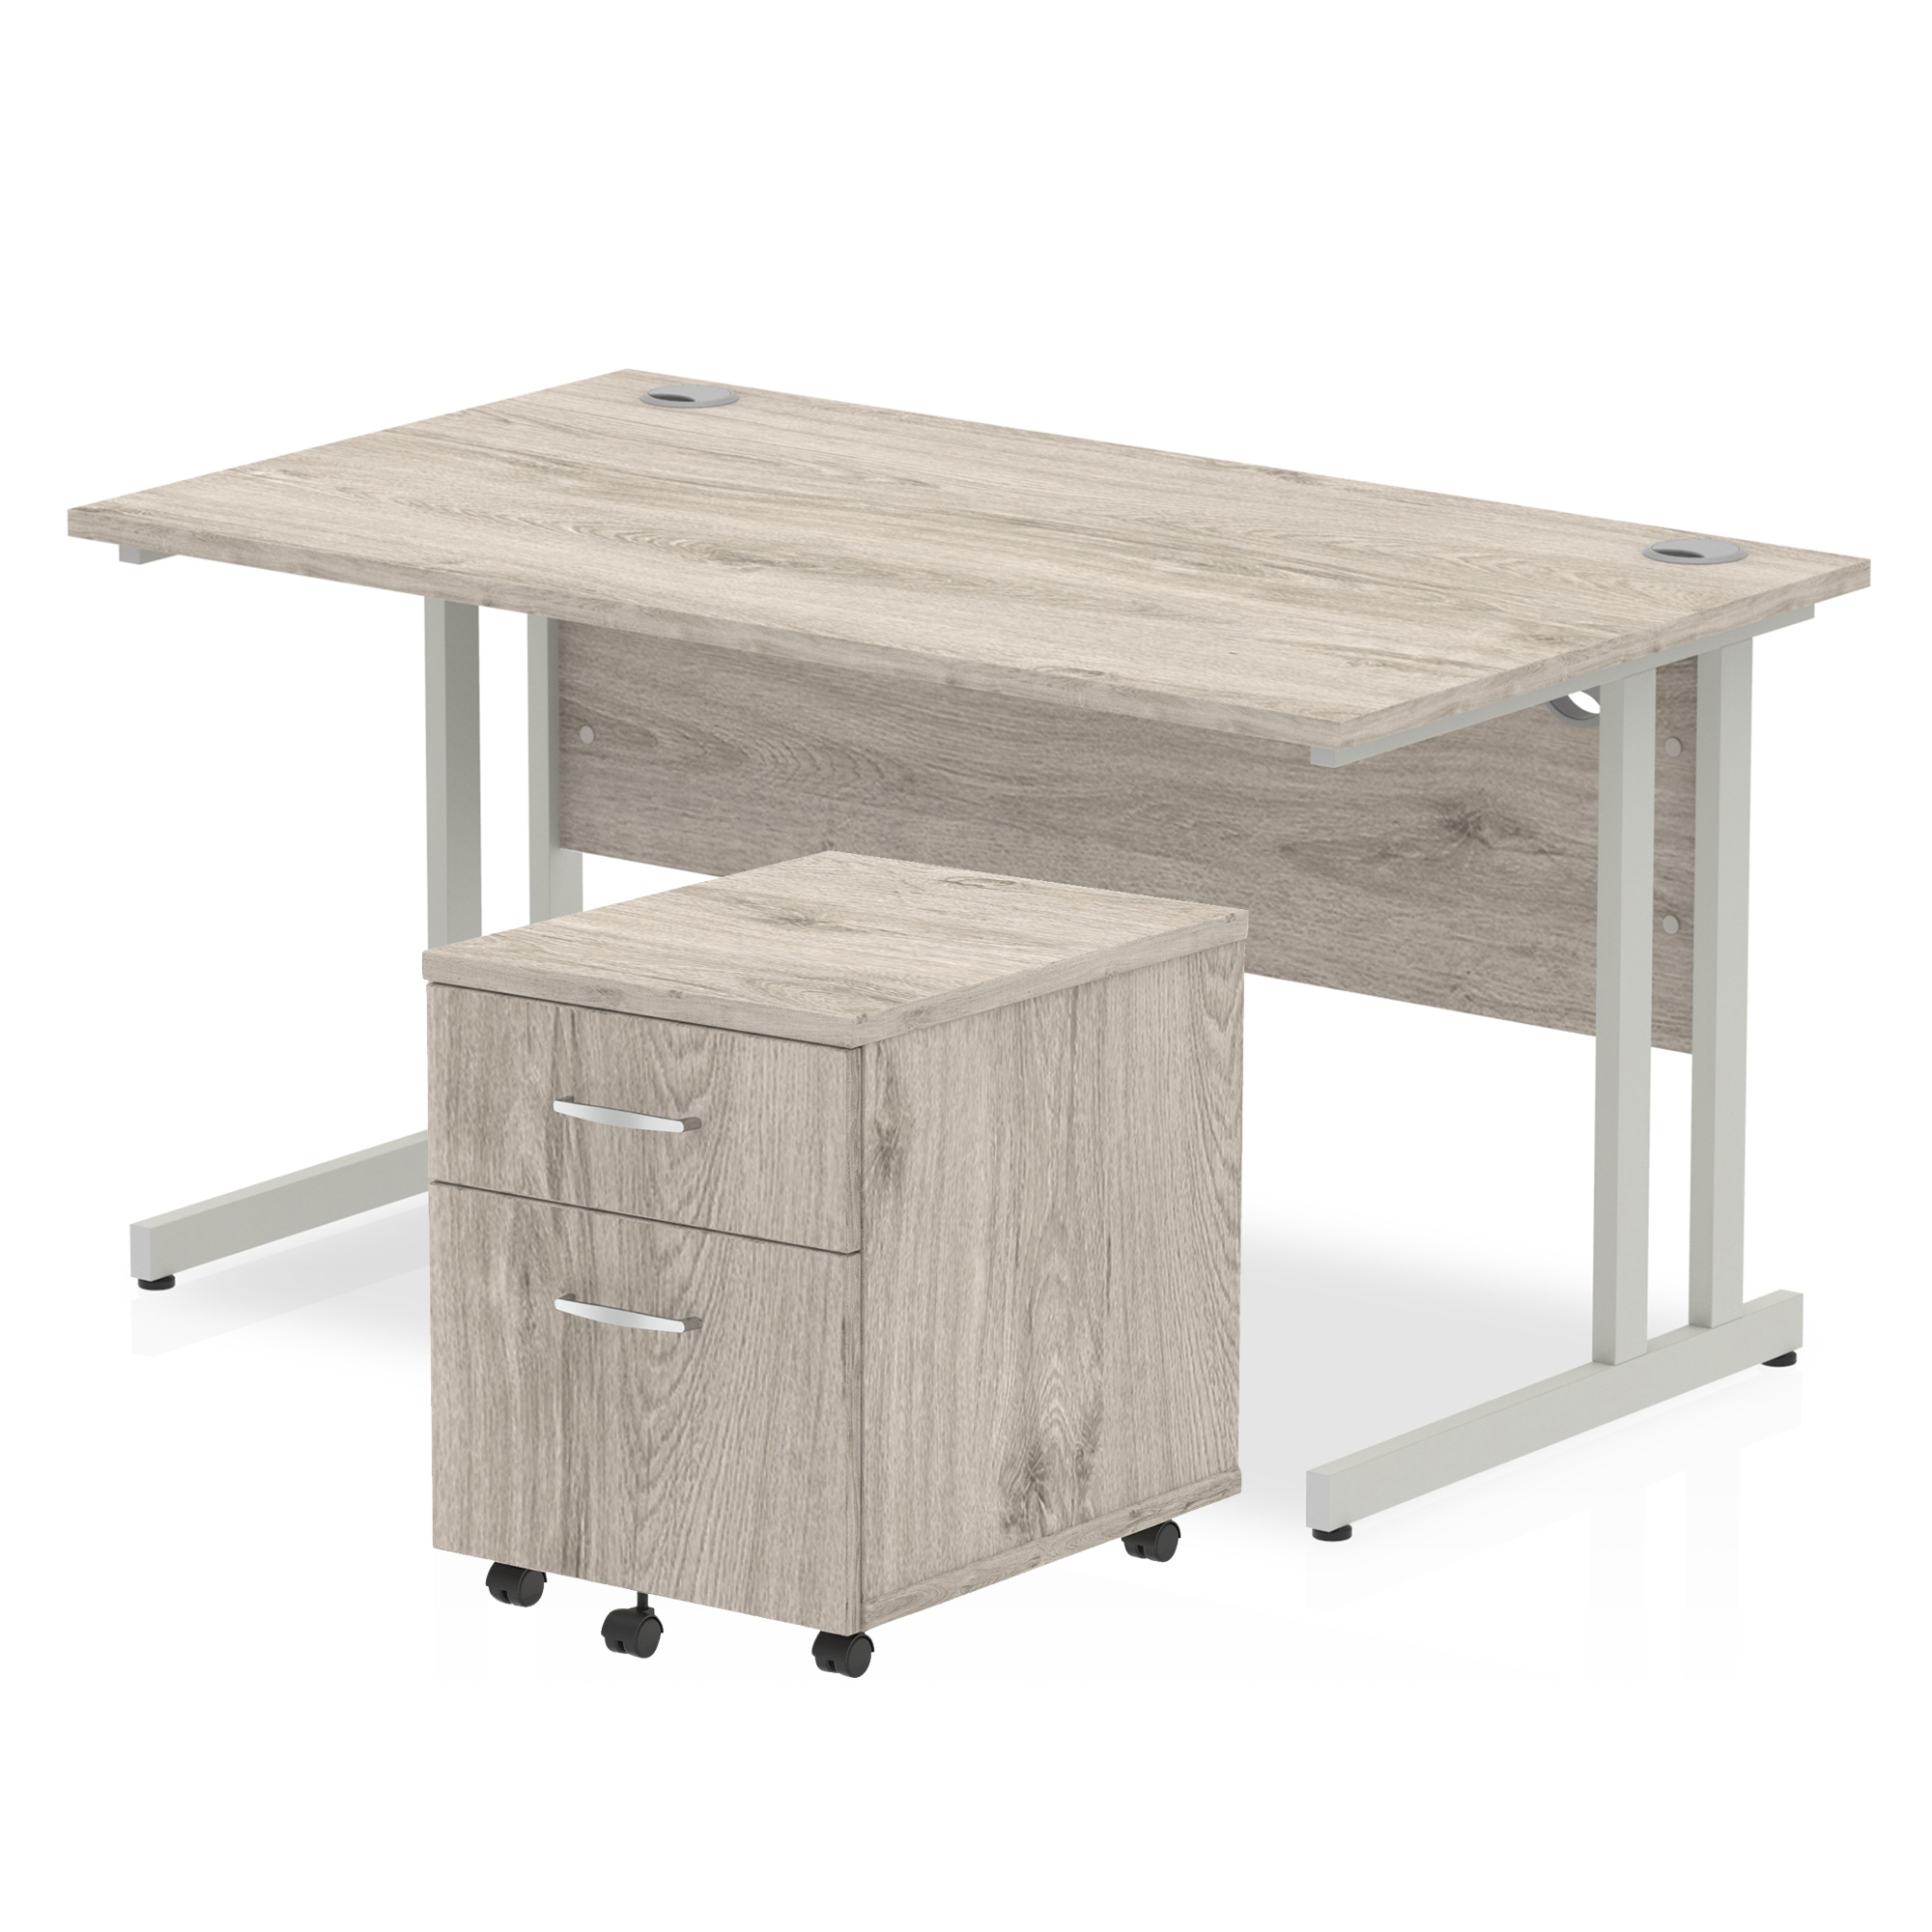 Desks Trexus Cantilever Desk 1400x800 & 2 Drawer Pedestal Grey Oak Bundle Offer Feb-Apr 2020